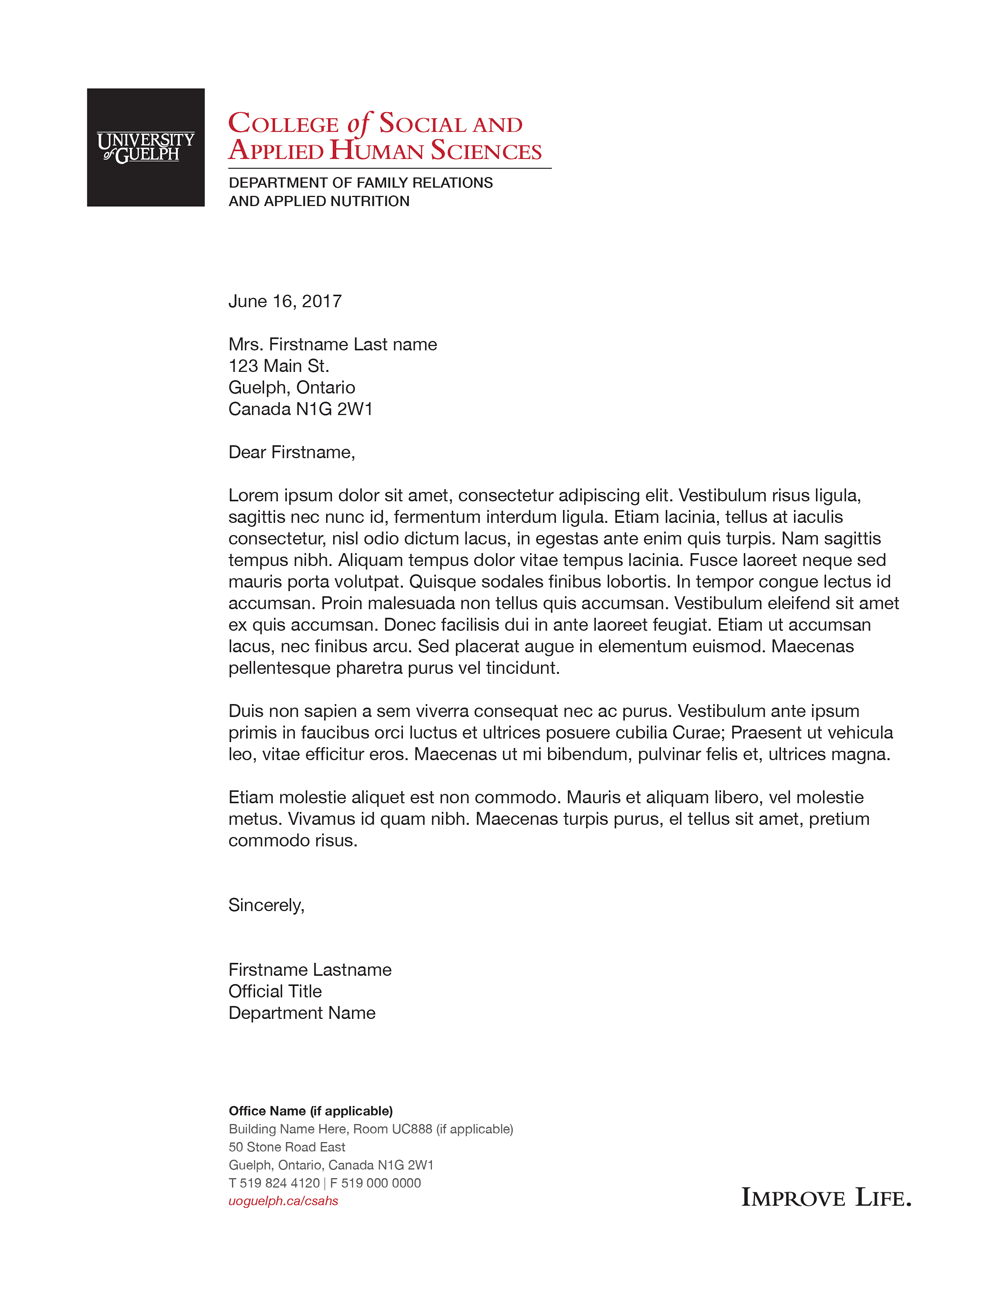 College of Social and Applied Human Sciences letterhead example